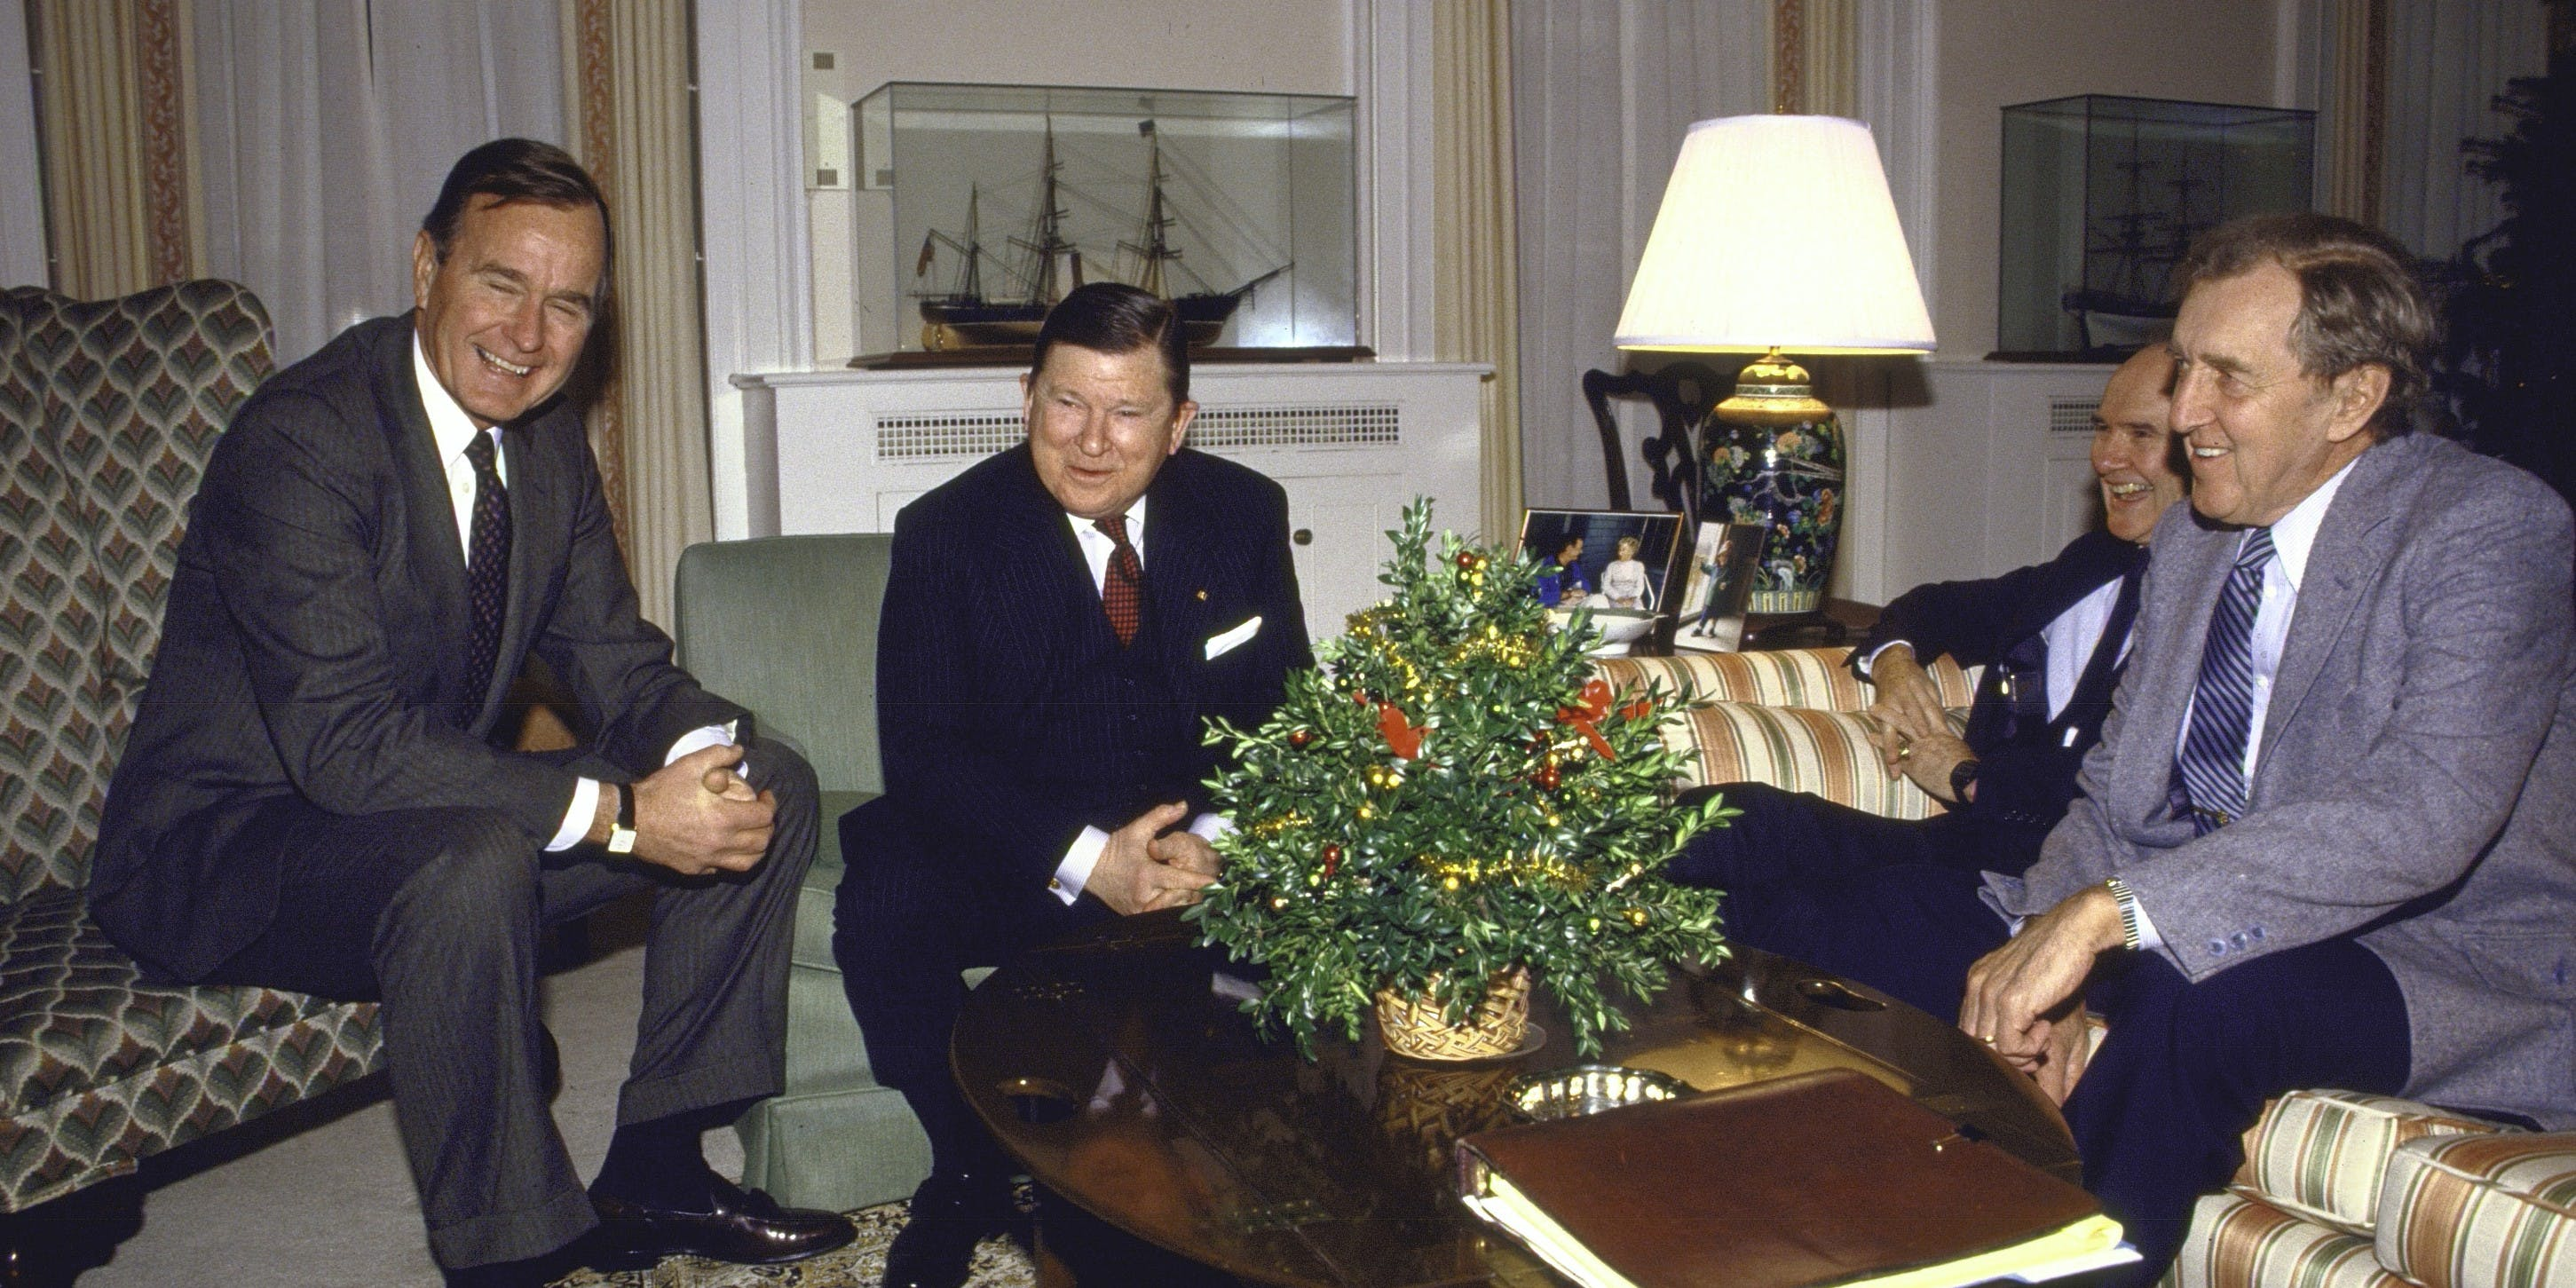 Let's Talk About George H.W. Bush's Role in the Iran-Contra Scandal